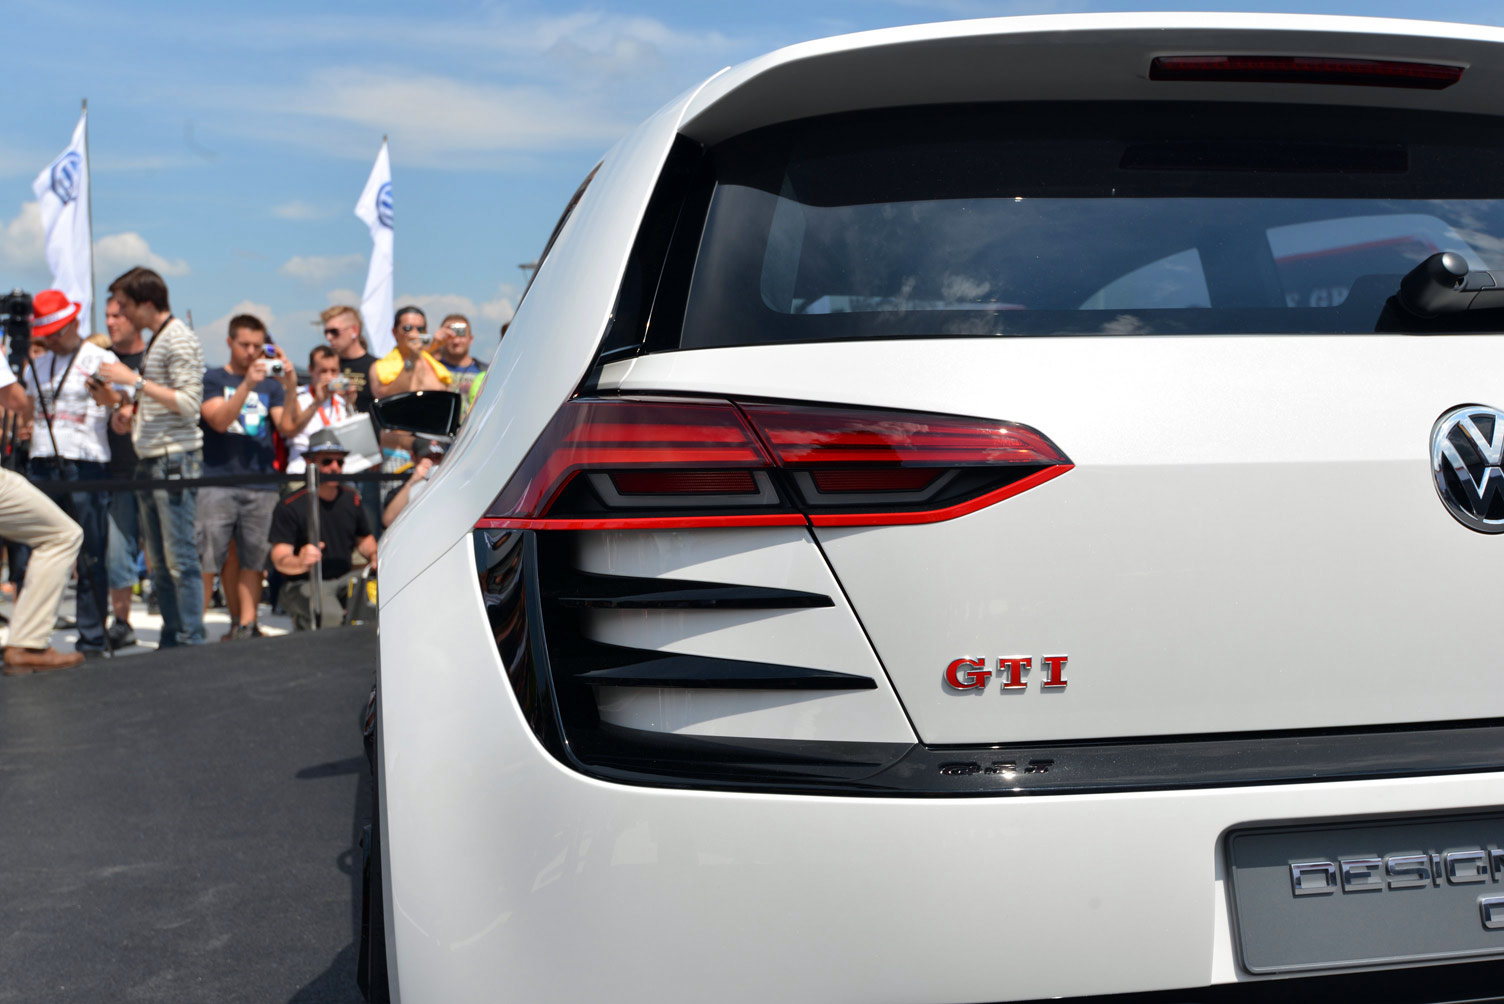 volkswagen-design-vision-gti-worthersee-046